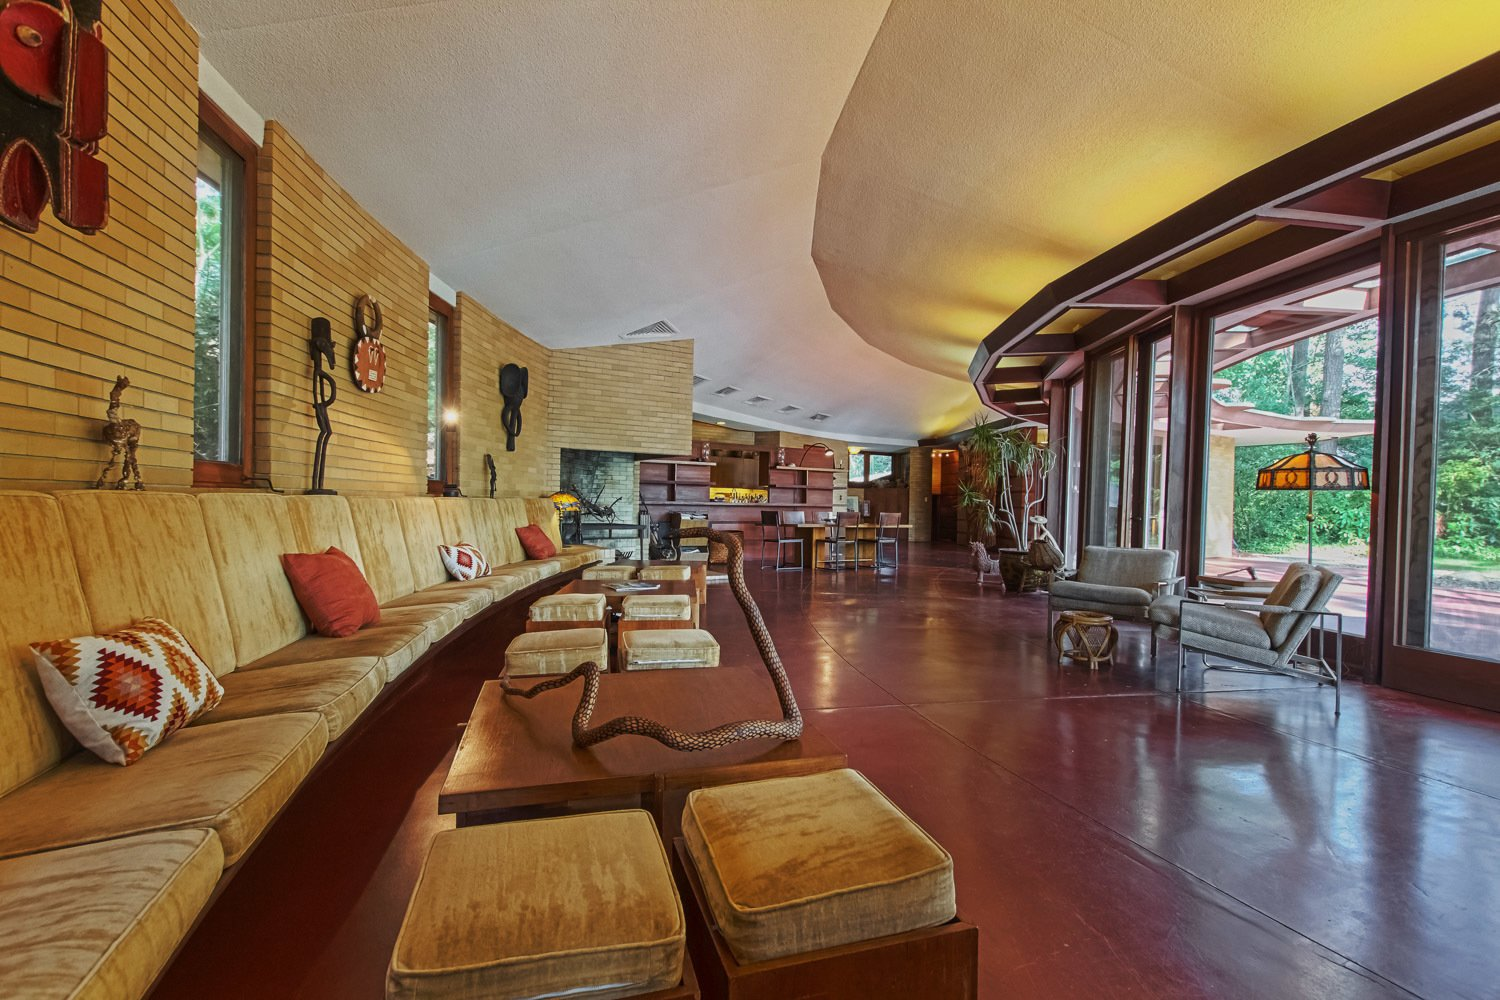 Photo 3 of 7 in You Can Own One of Frank Lloyd Wright's Final Homes for $2.75 Million